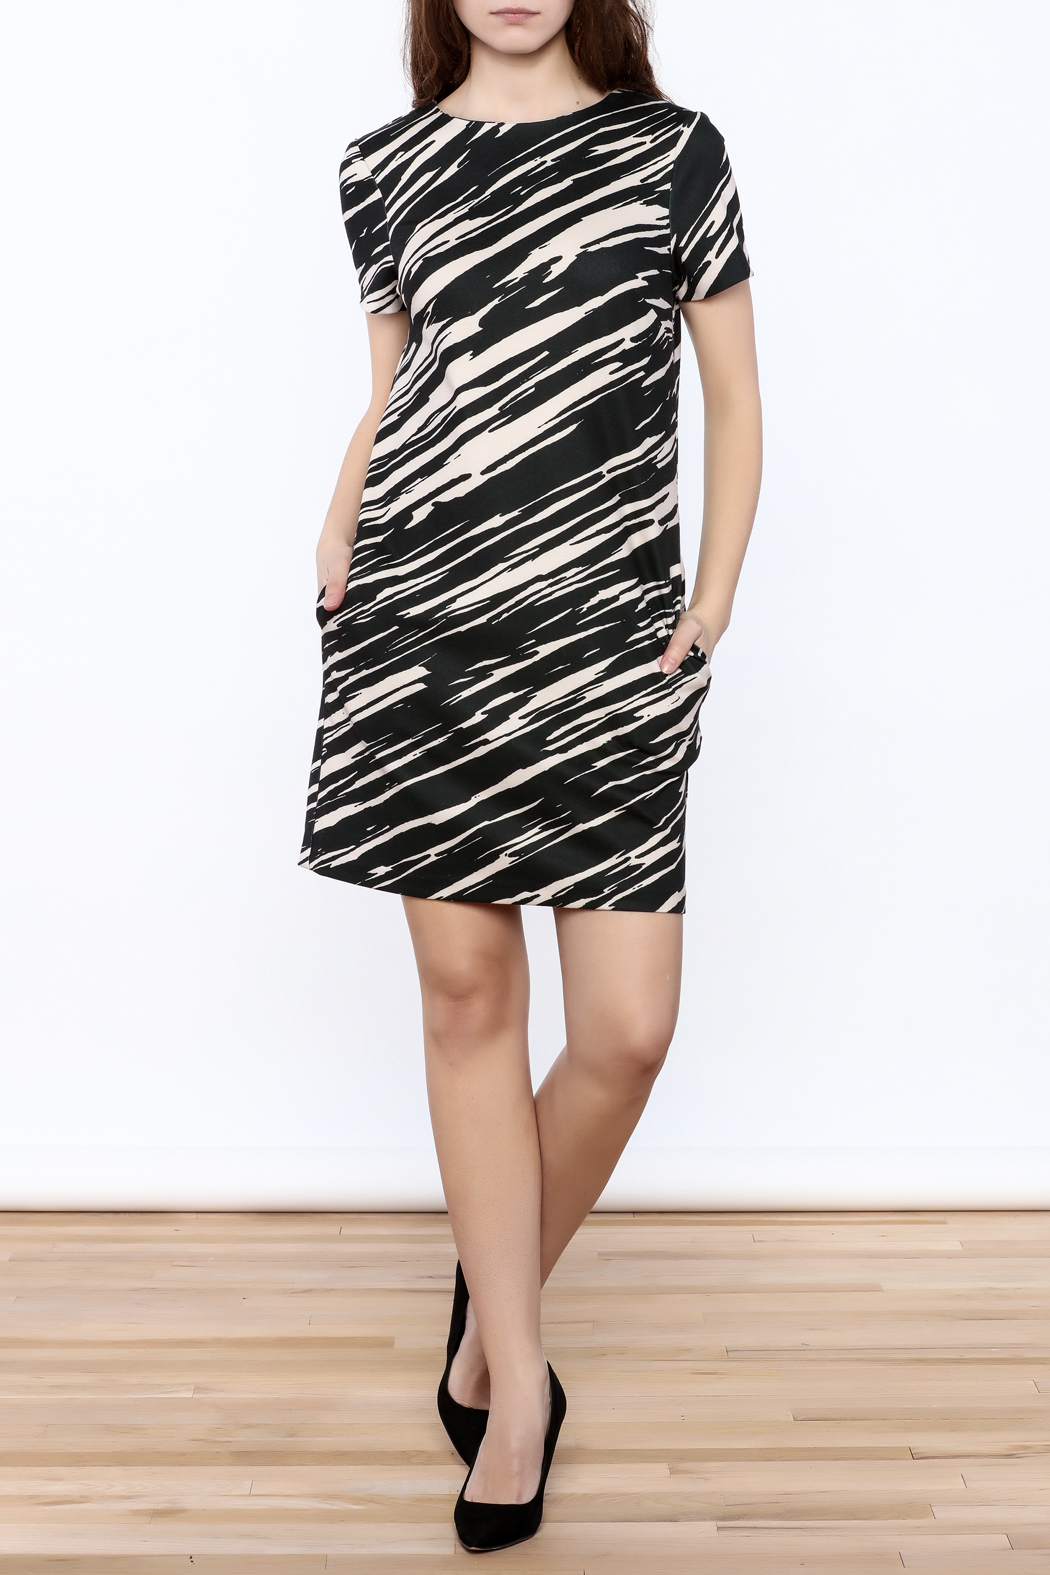 Trina by Trina Turk Zebra Mini Dress - Front Full Image